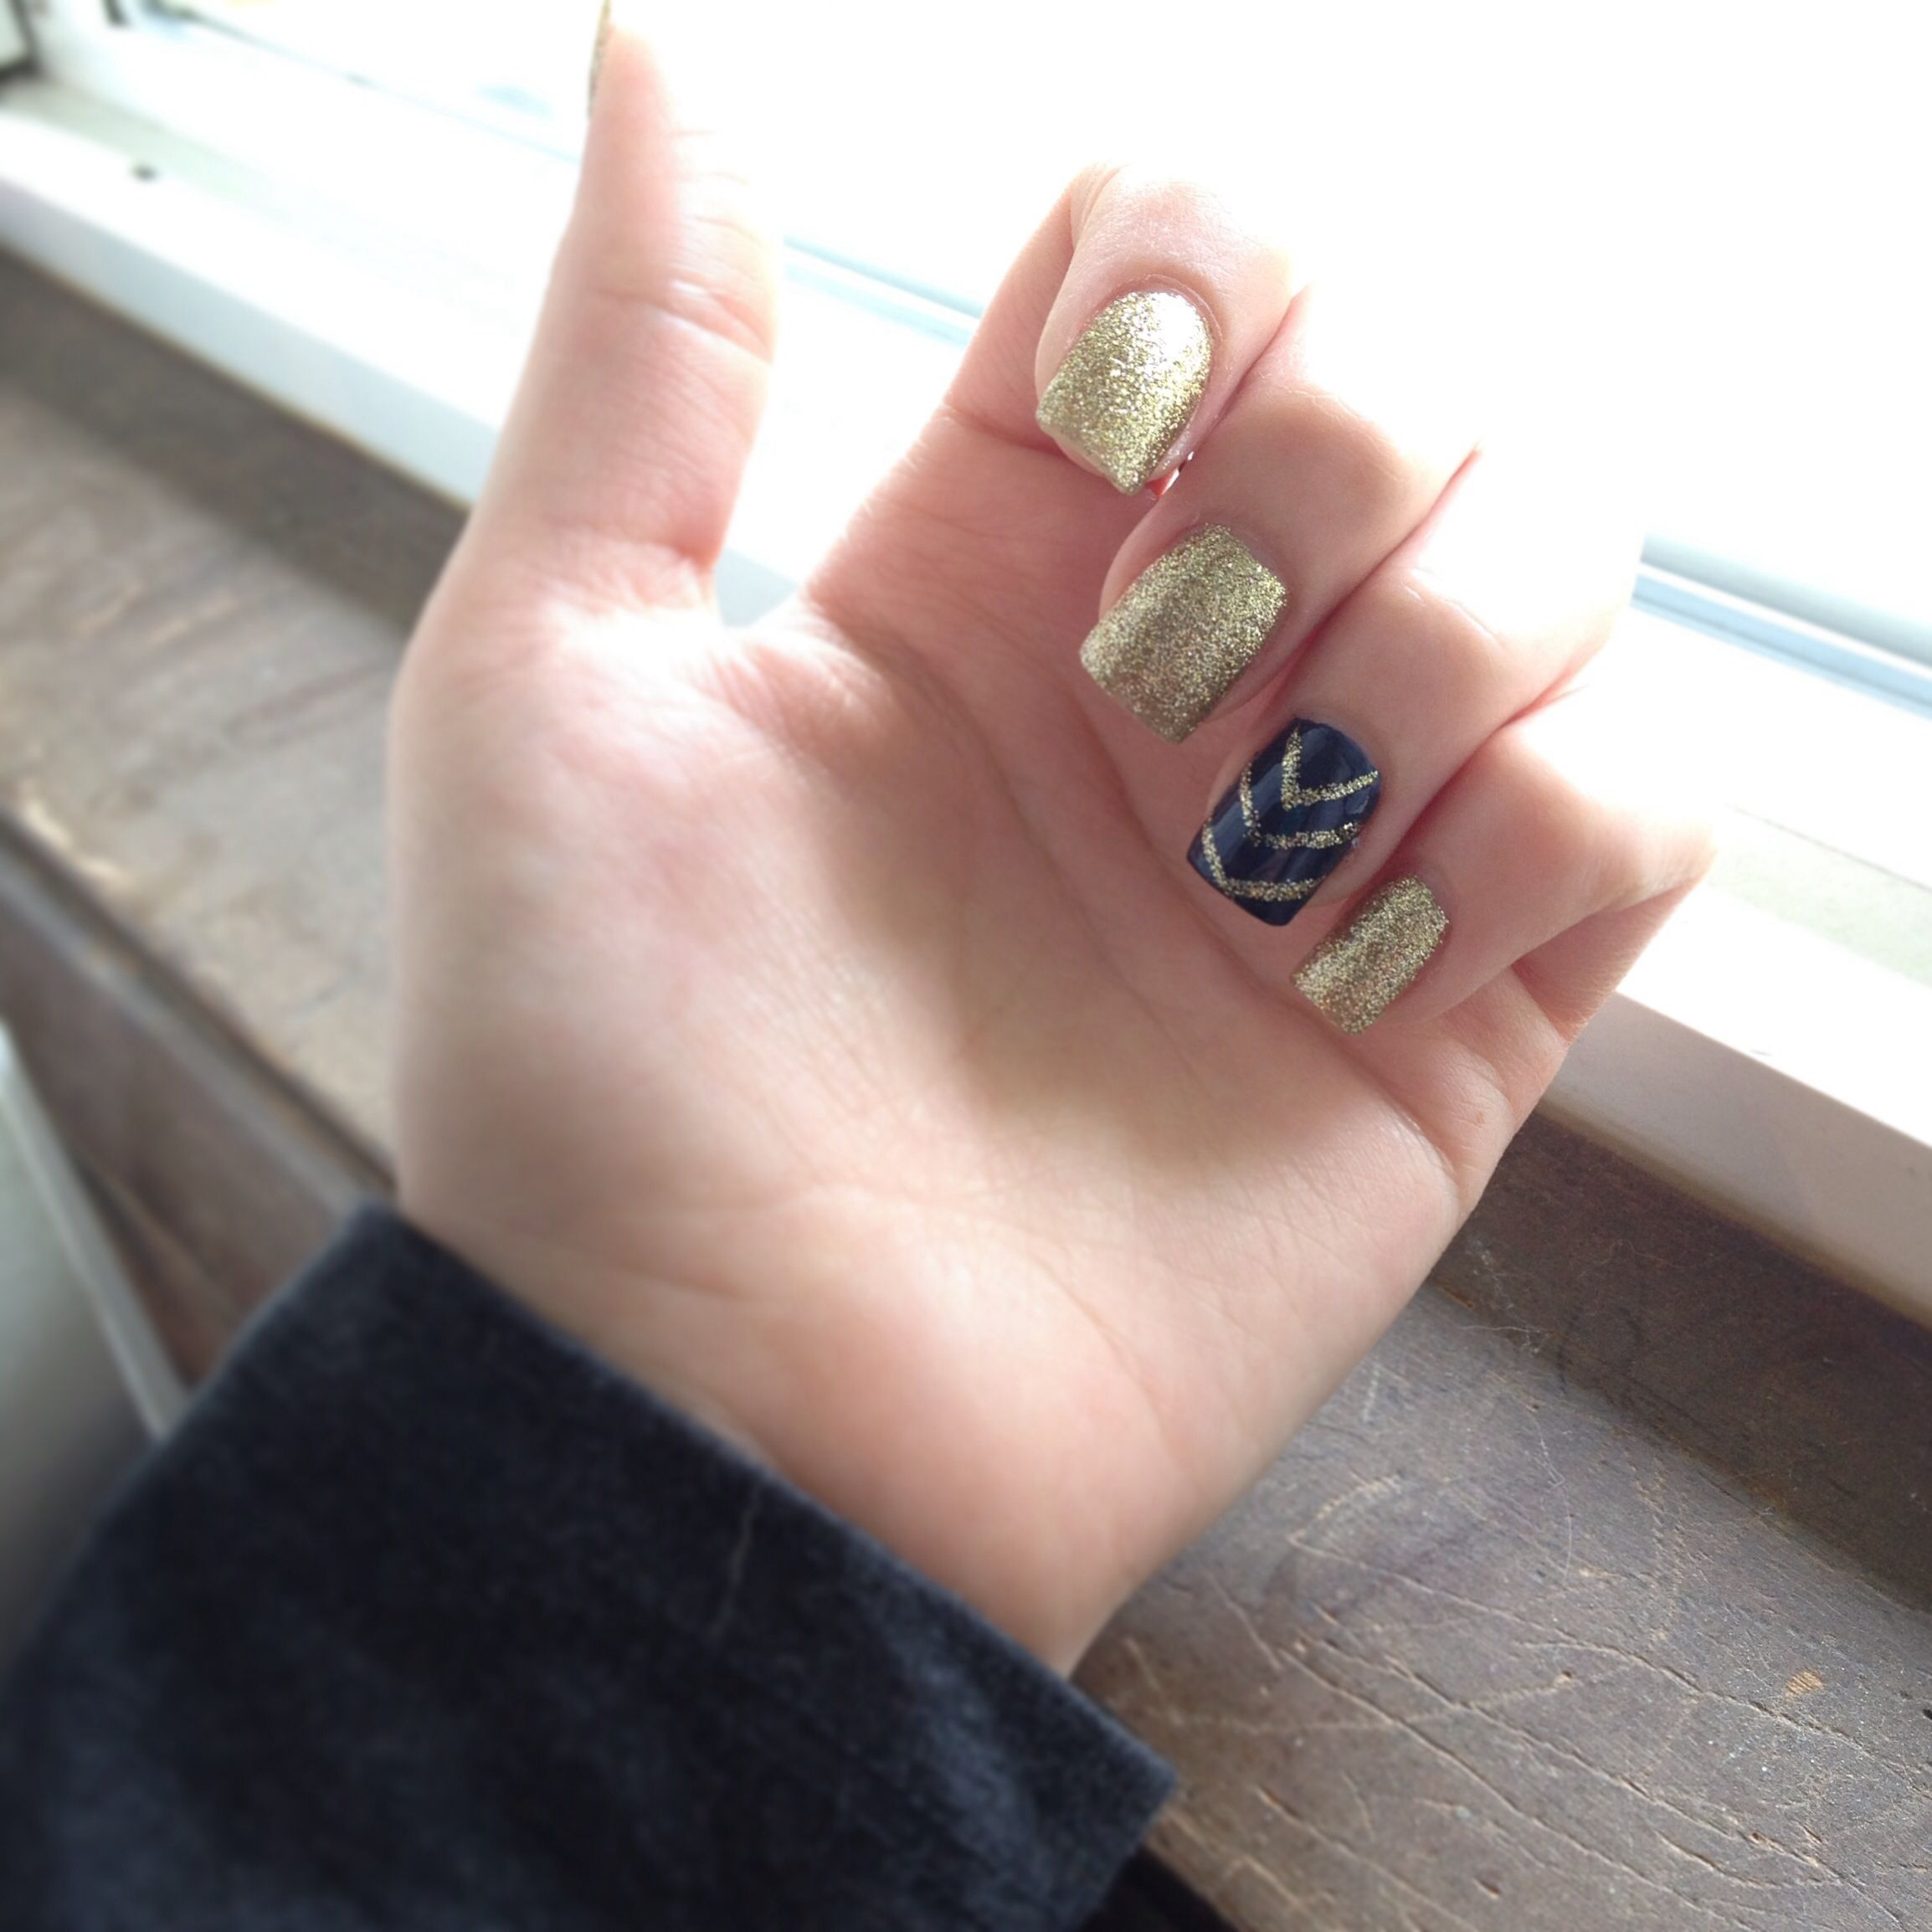 Prom nails, navy blue and gold glitter acrylic nails | Nails ...